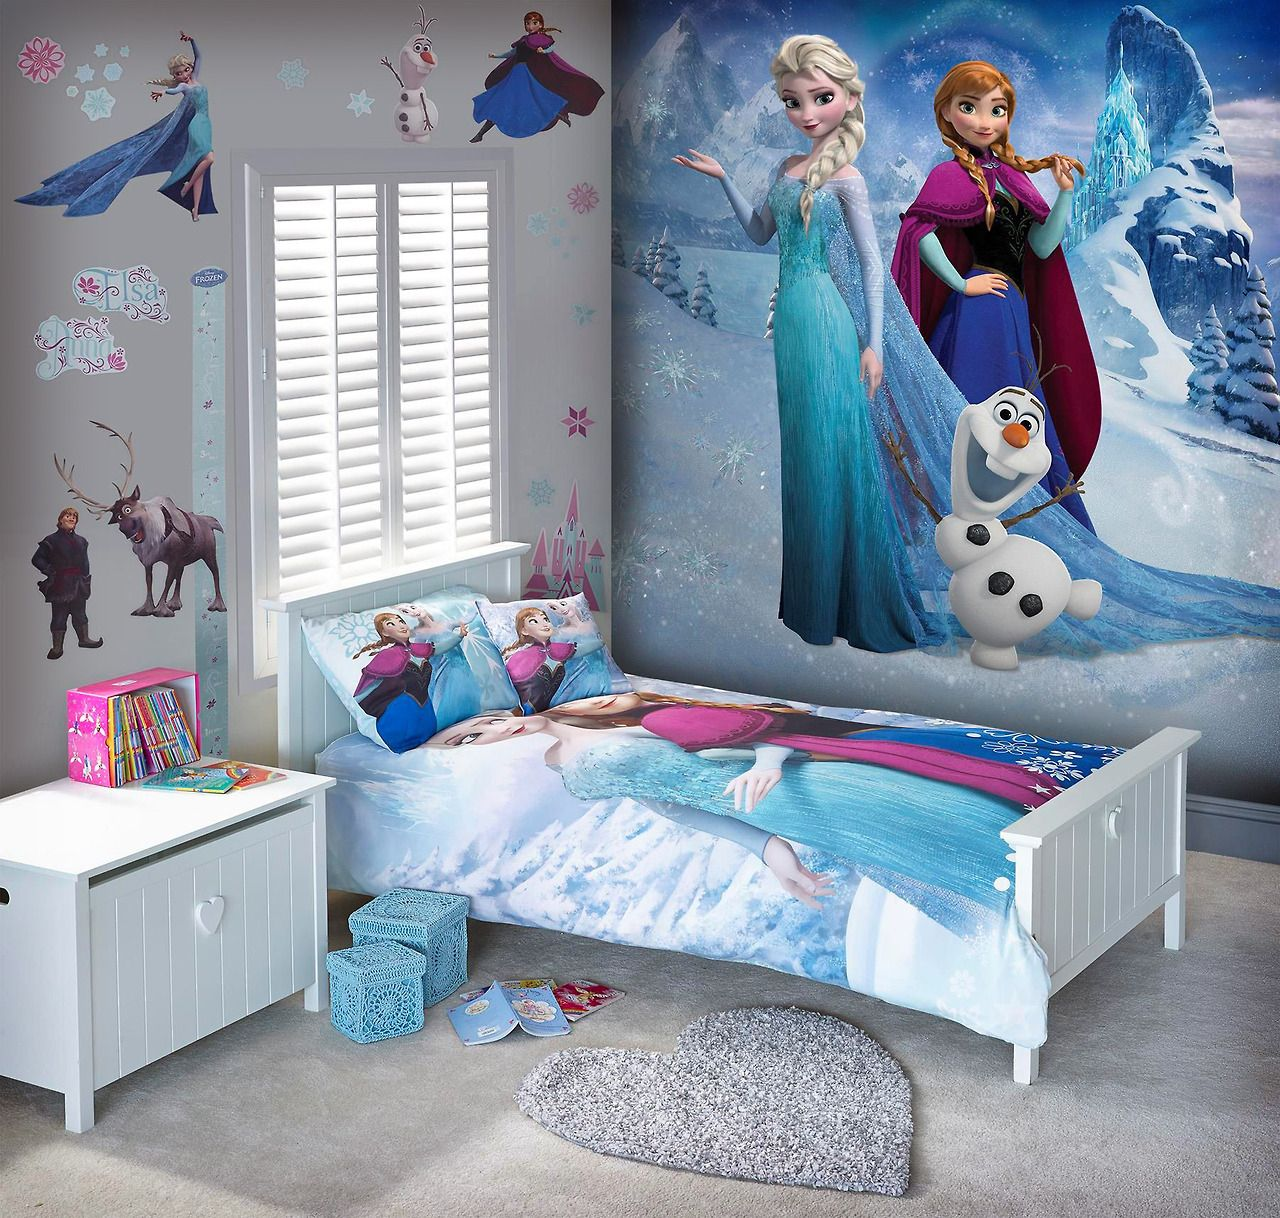 Disney Frozen Large Wall Mural From Next Kids Bedroom Idea Intended For Size 1280 X 1218 Frozen Bedroom Kids Bedroom Decor Frozen Girls Room Luxury frozen room pictures